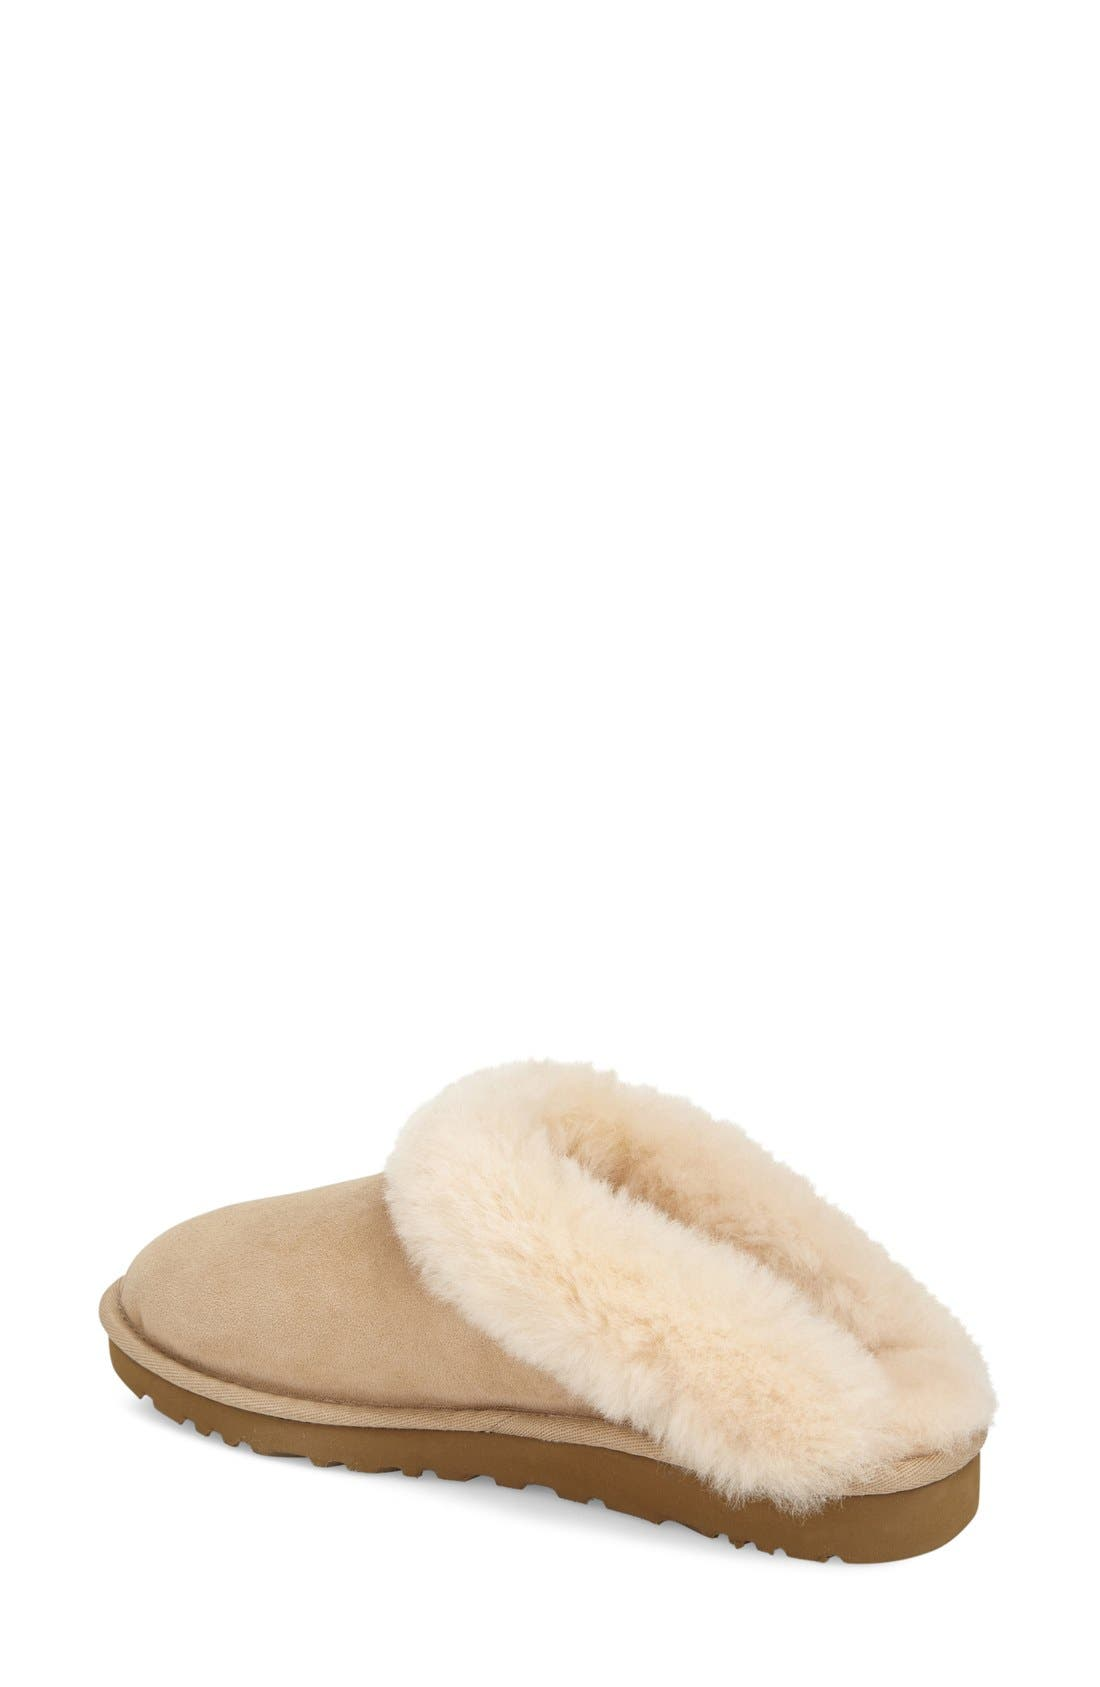 Alternate Image 2  - UGG® 'Cluggette' Genuine Shearling Indoor/Outdoor Slipper (Women)